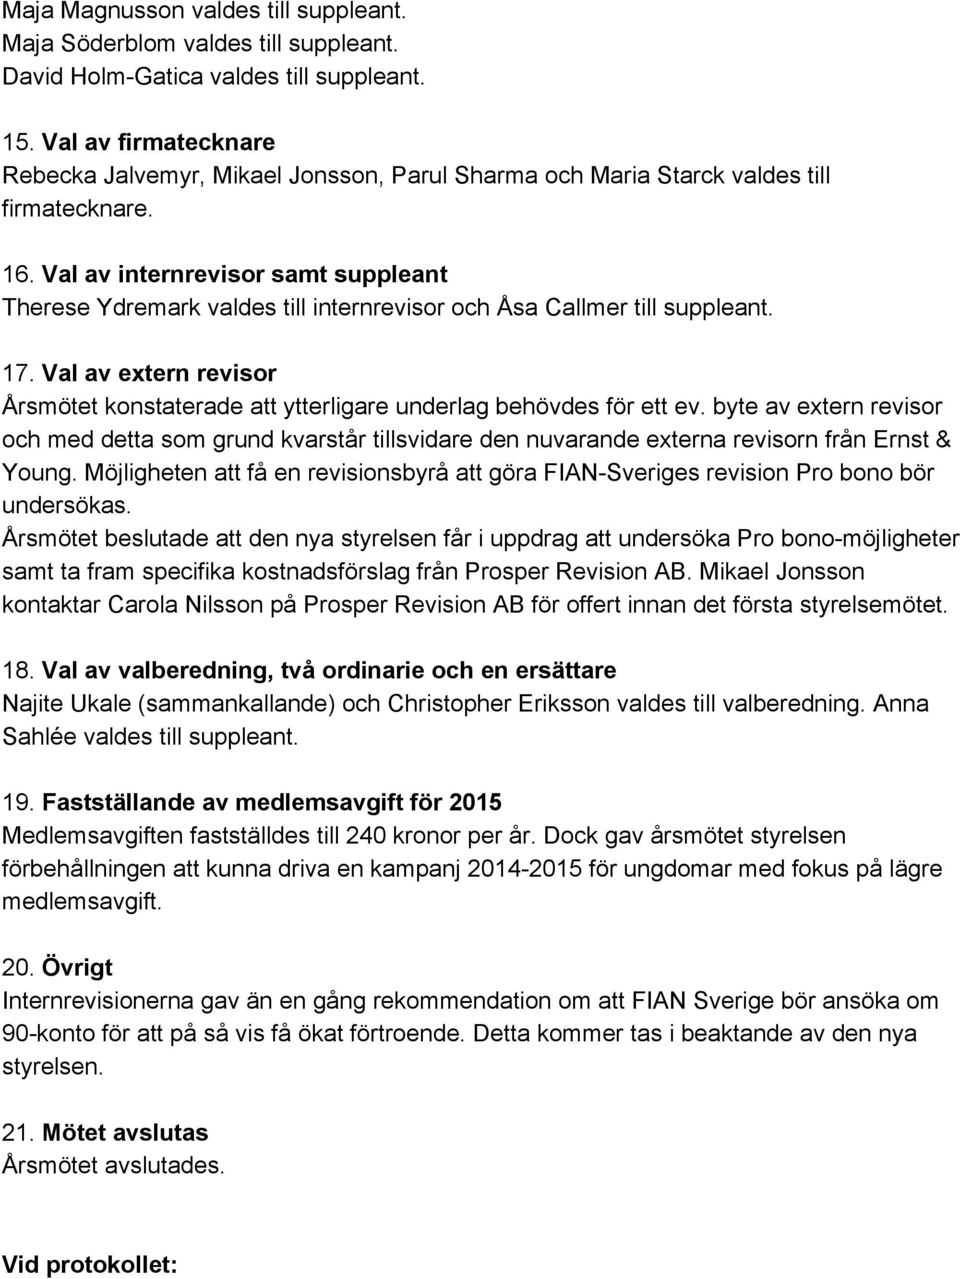 Val av internrevisor samt suppleant Therese Ydremark valdes till internrevisor och Åsa Callmer till suppleant. 17.